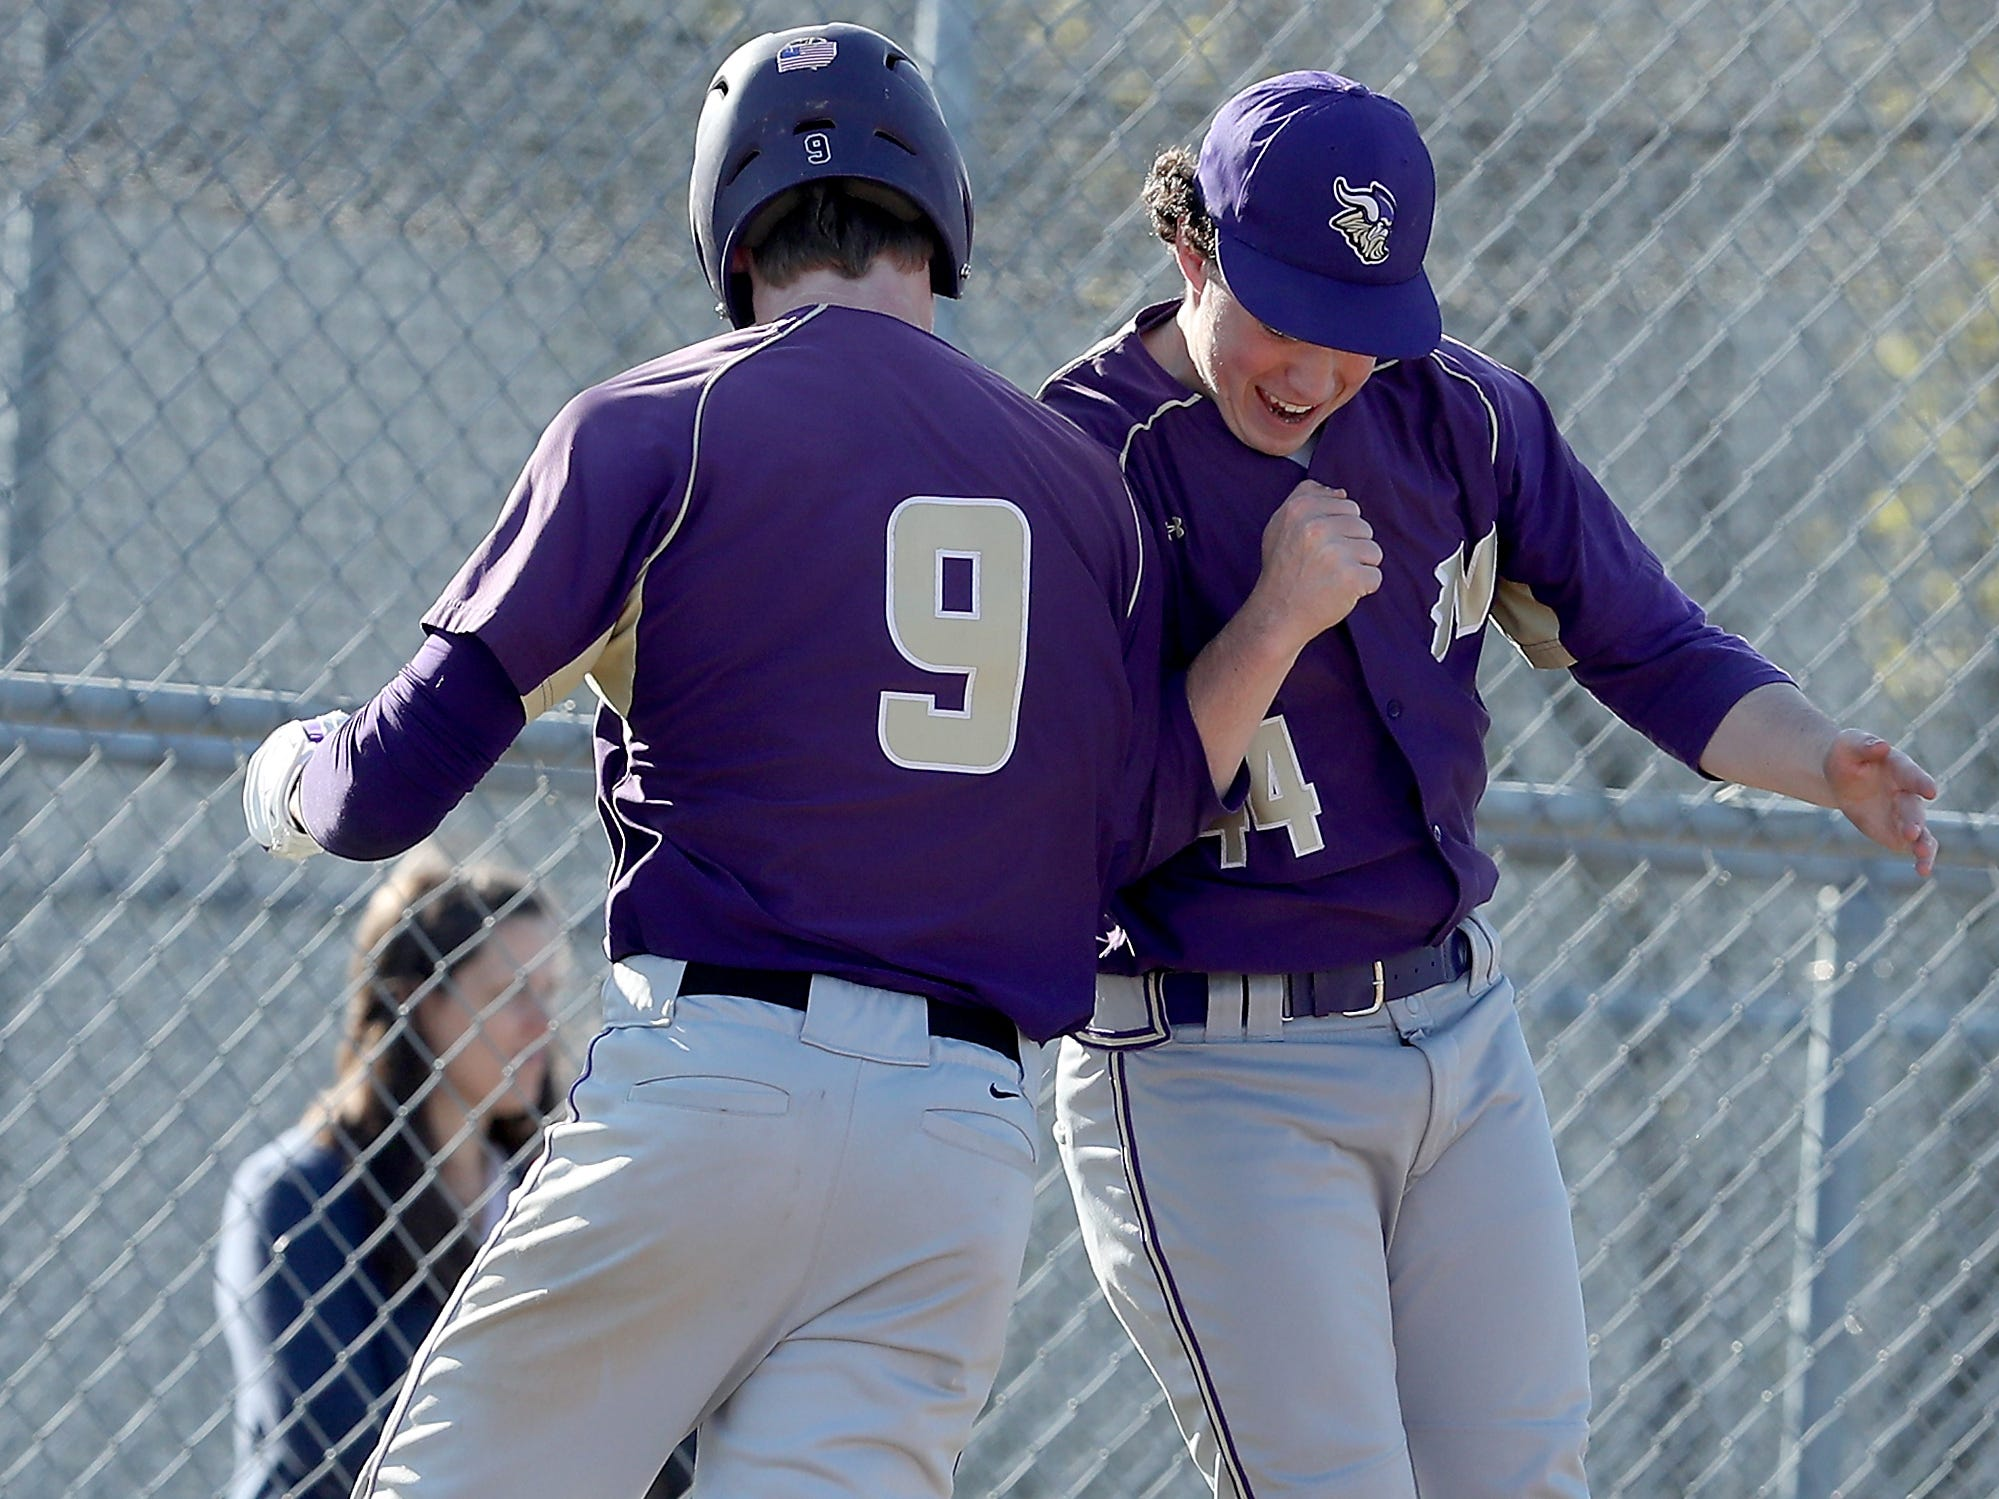 North Kitsap's Chris Schuchart (9) and Andrew Jones (44) leap into the air in celebration of Schuchart's home run hit against Bremerton on Wednesday, April 16, 2019.